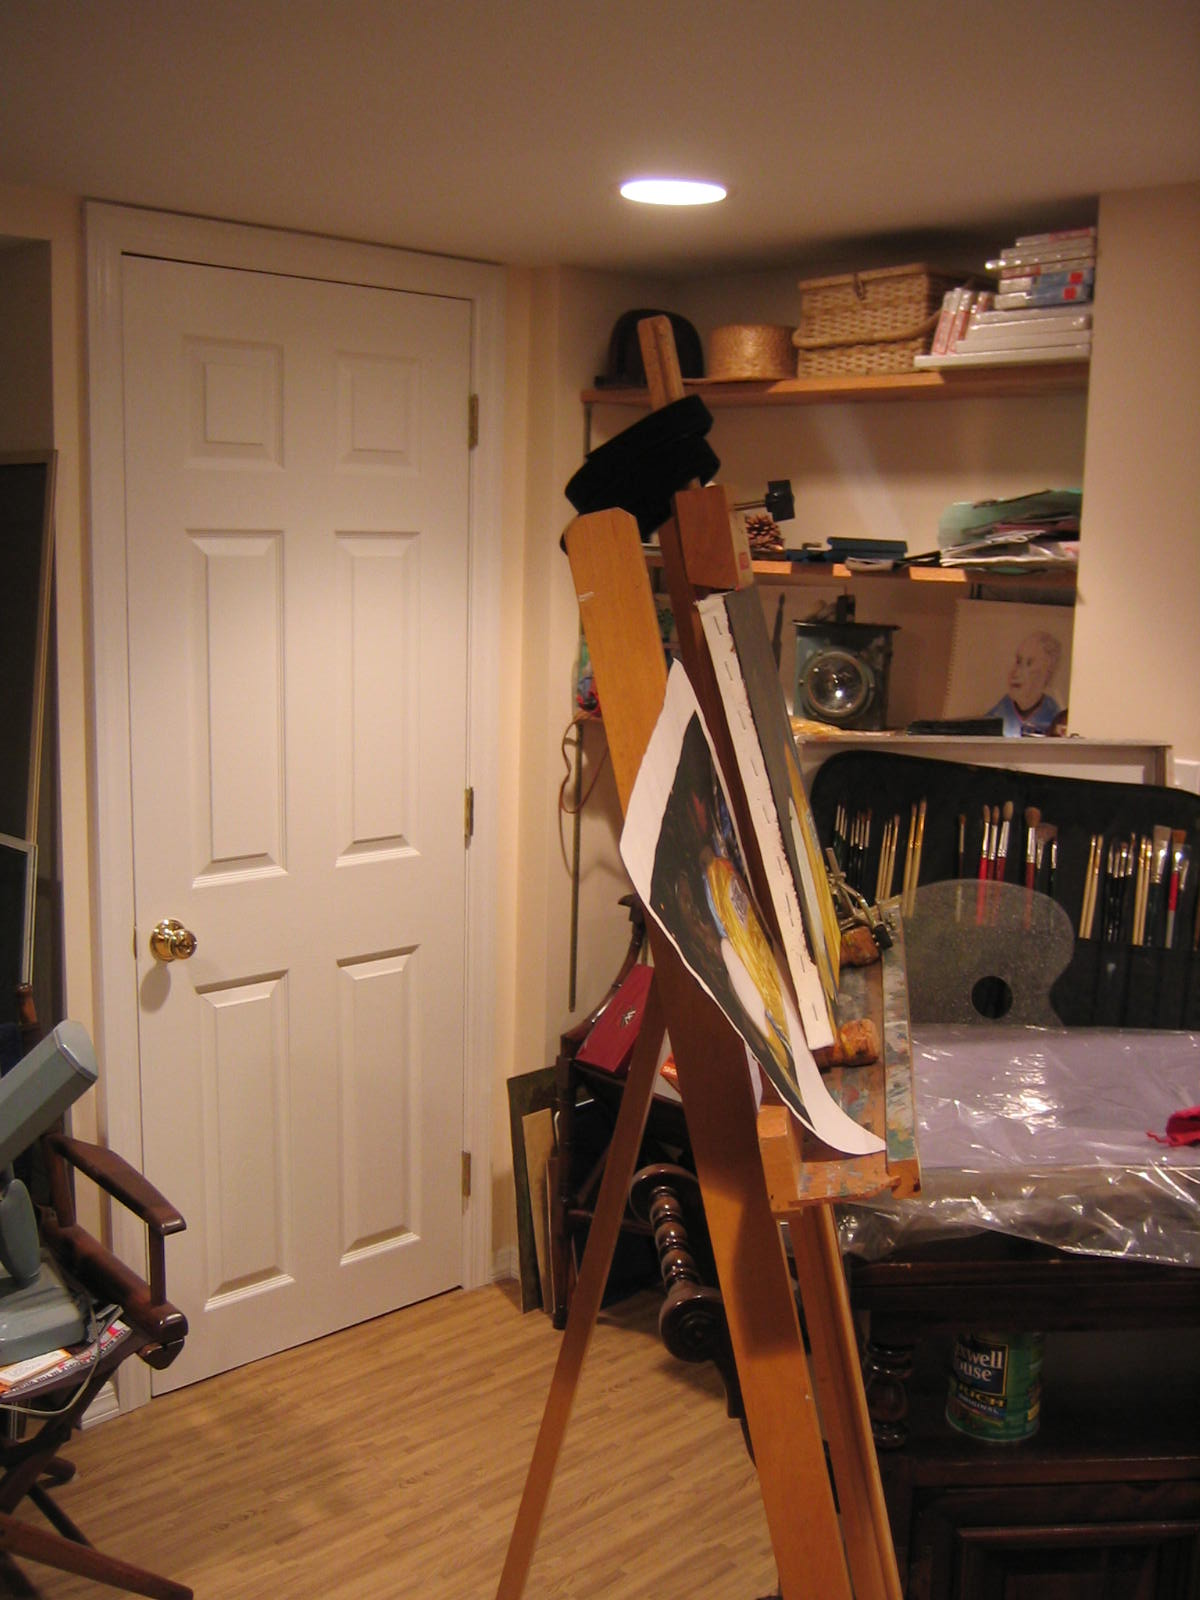 Basment Turned Into Art Studio And Laundry